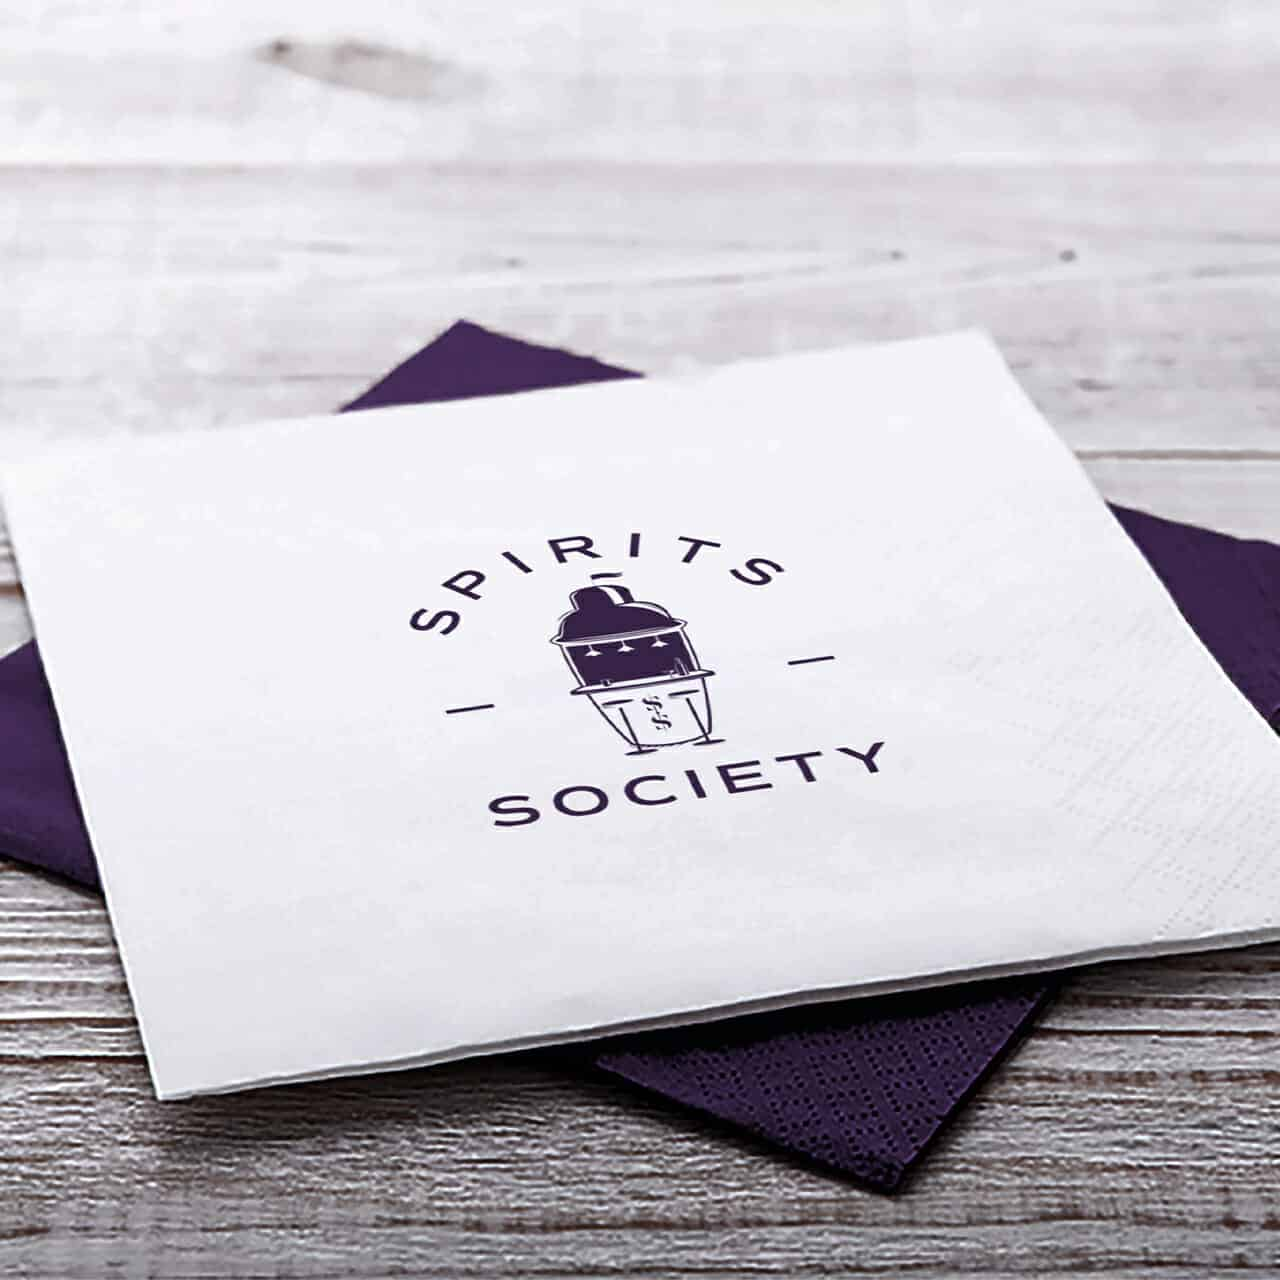 Branded Napkins for Spirits Society